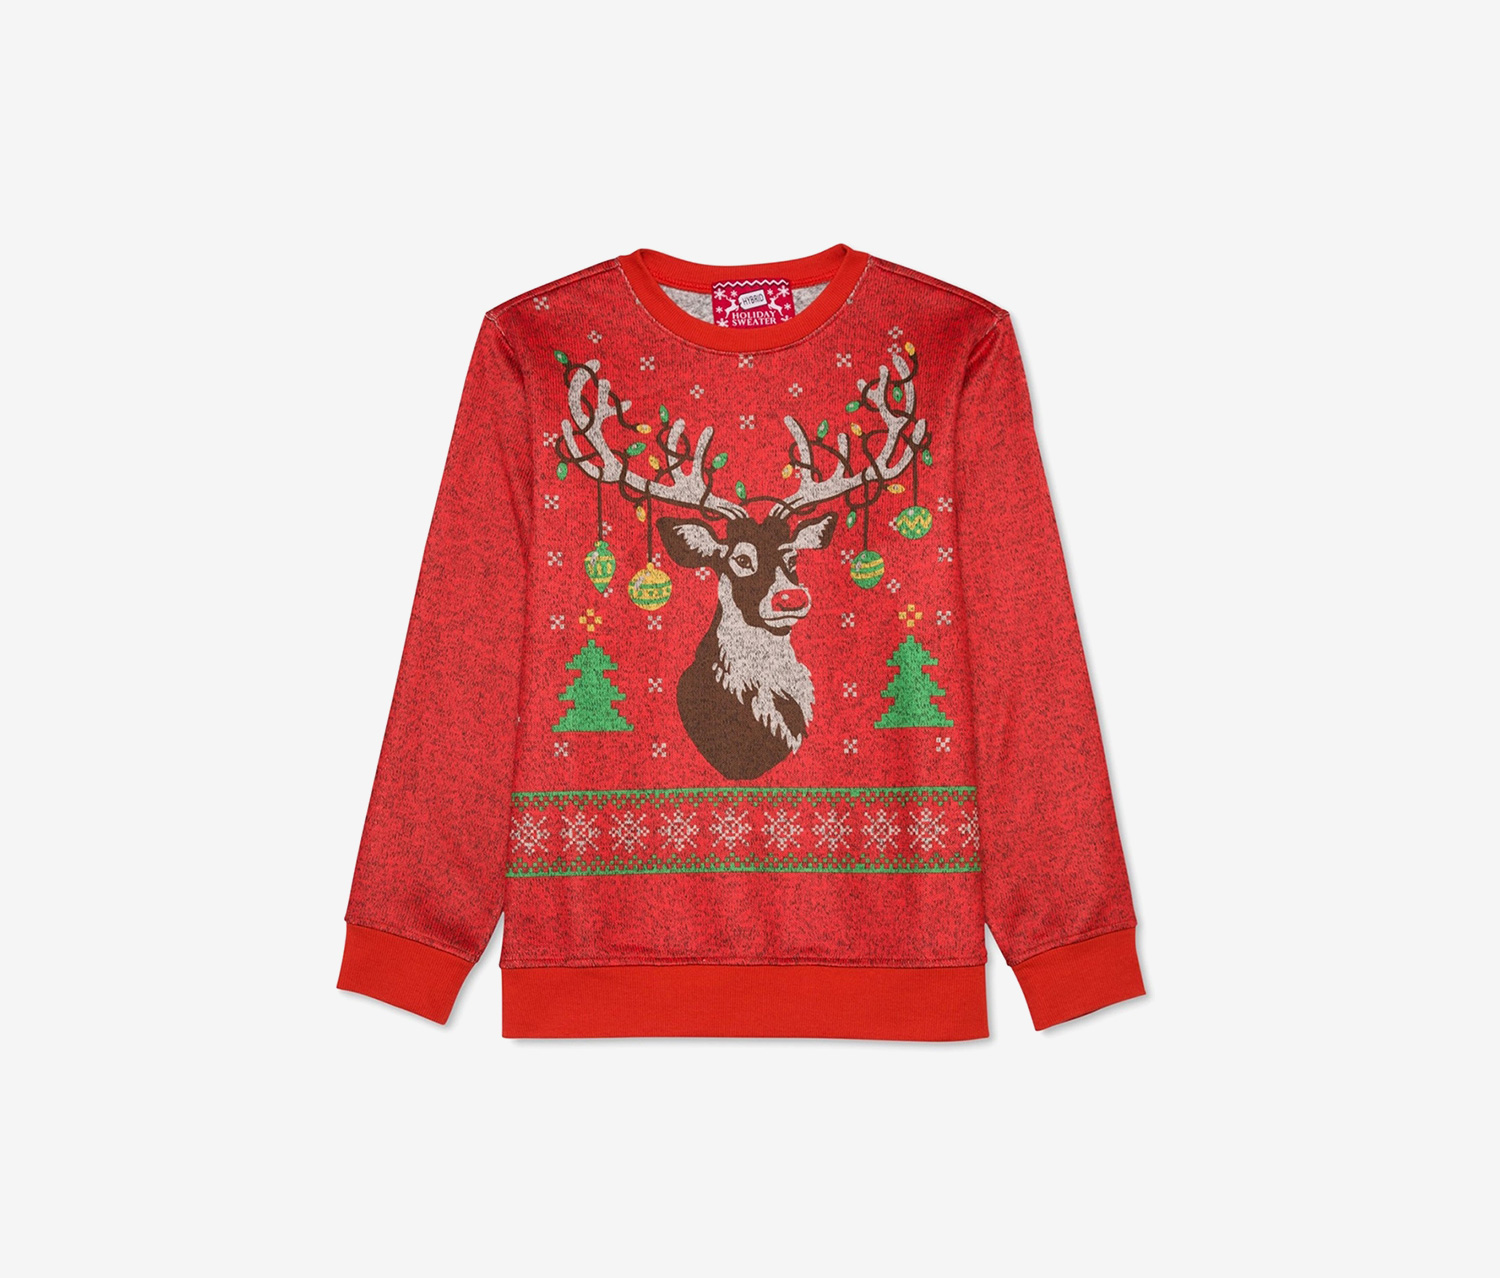 Boys Holiday Pullover Knit Sweater, Red